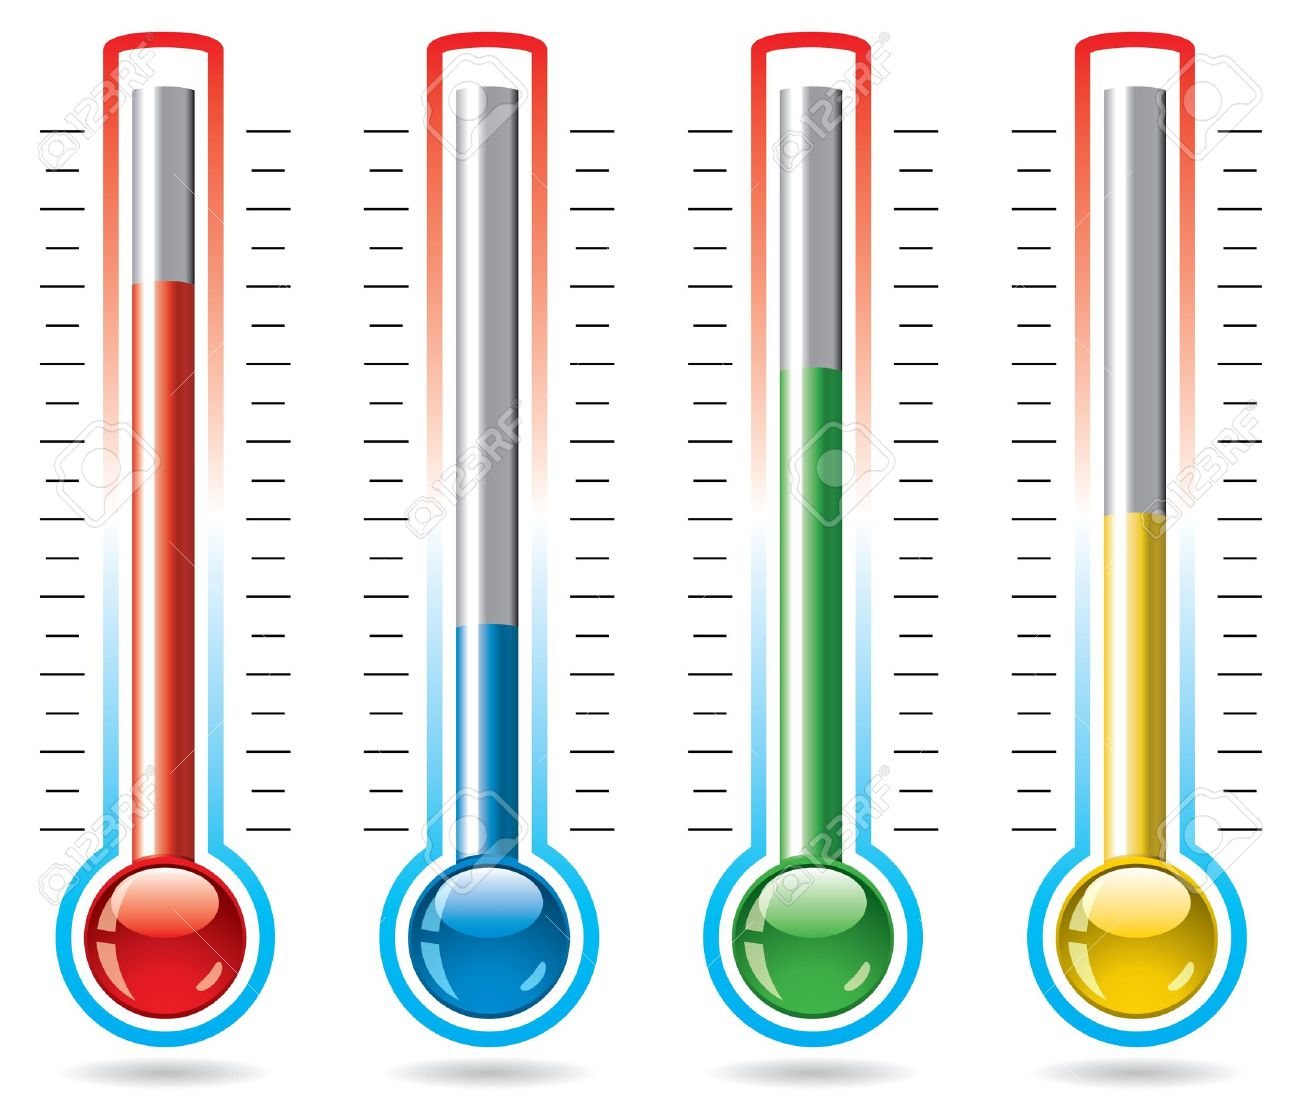 vector illustration of thermometers Stock Vector - 11674561